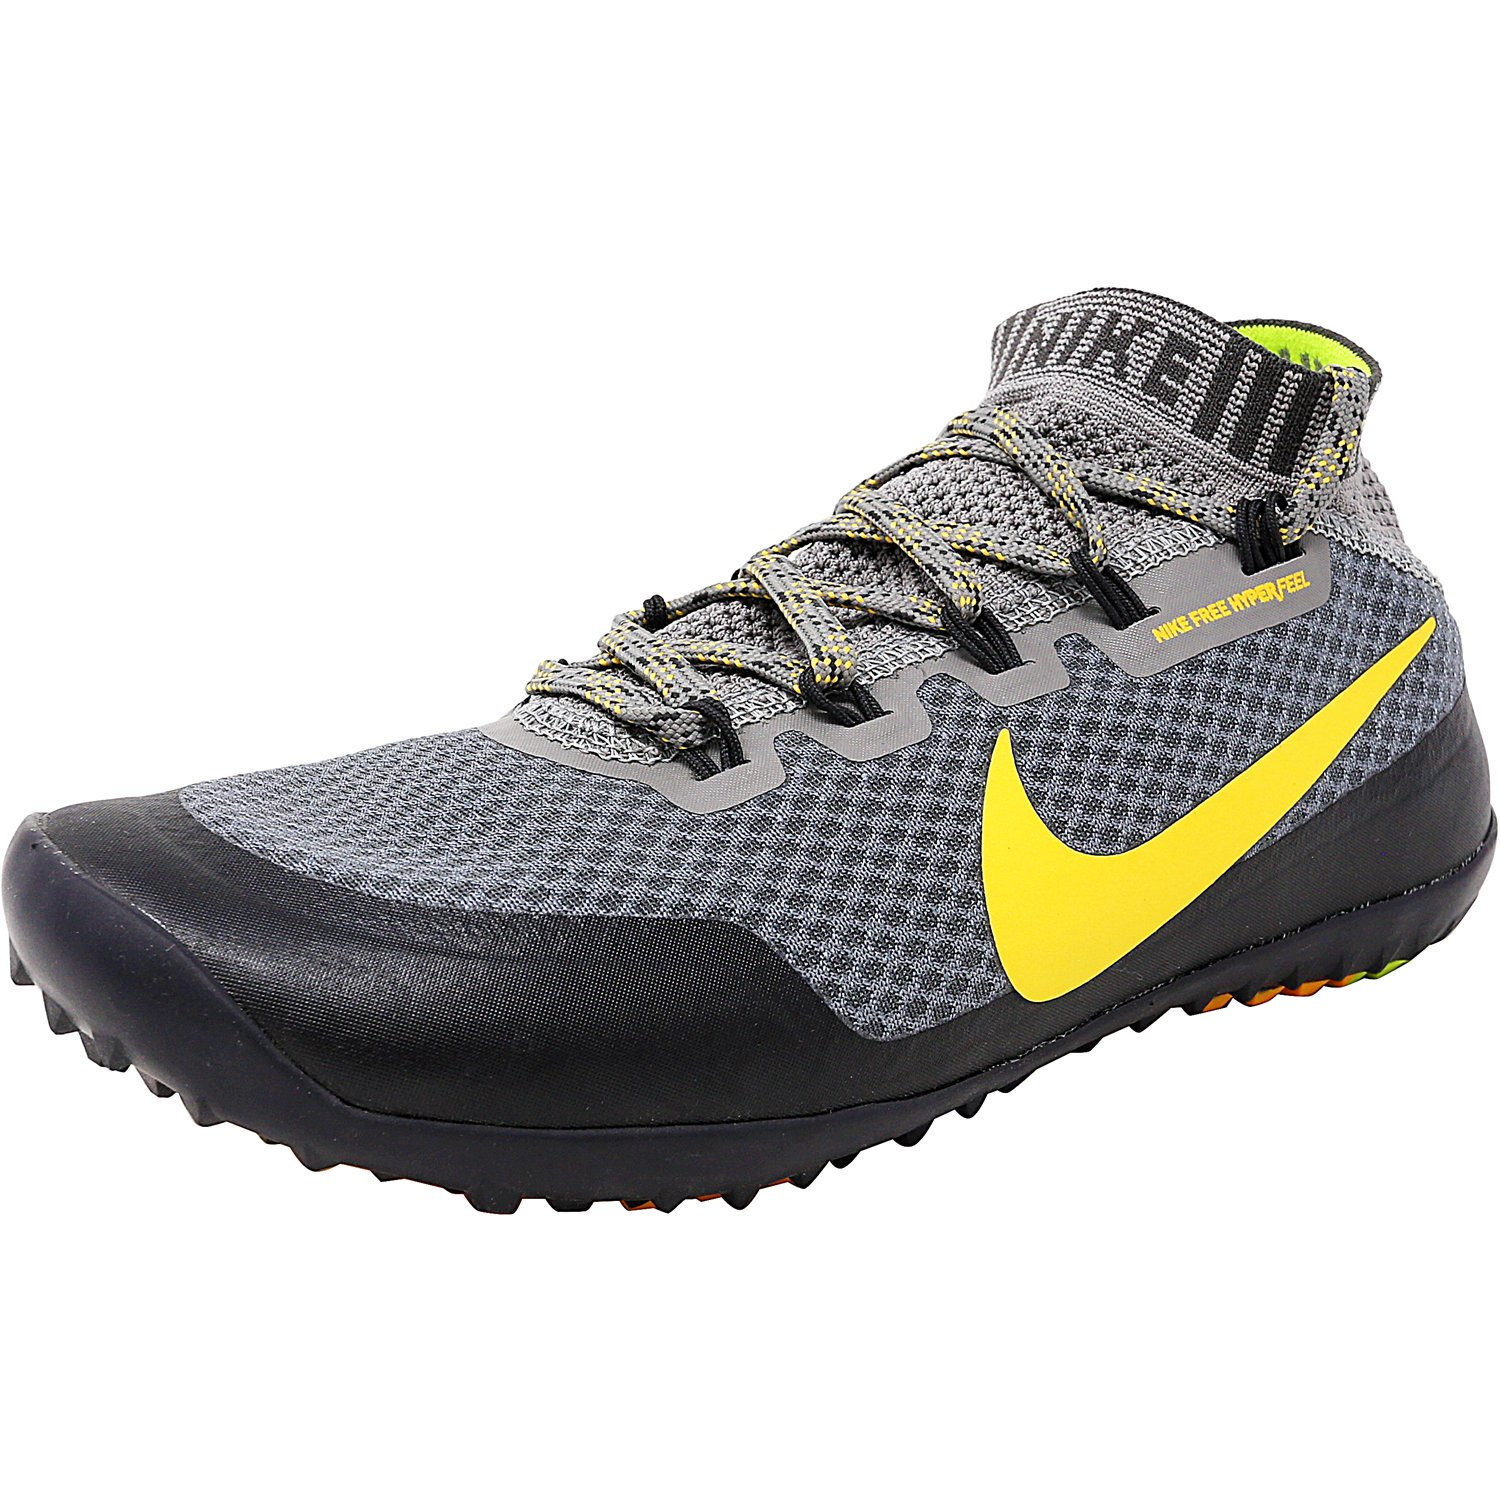 Nike Women's 616254 080 Ankle-High Running Shoe - 7.5M 7.5M 7.5M 514a56